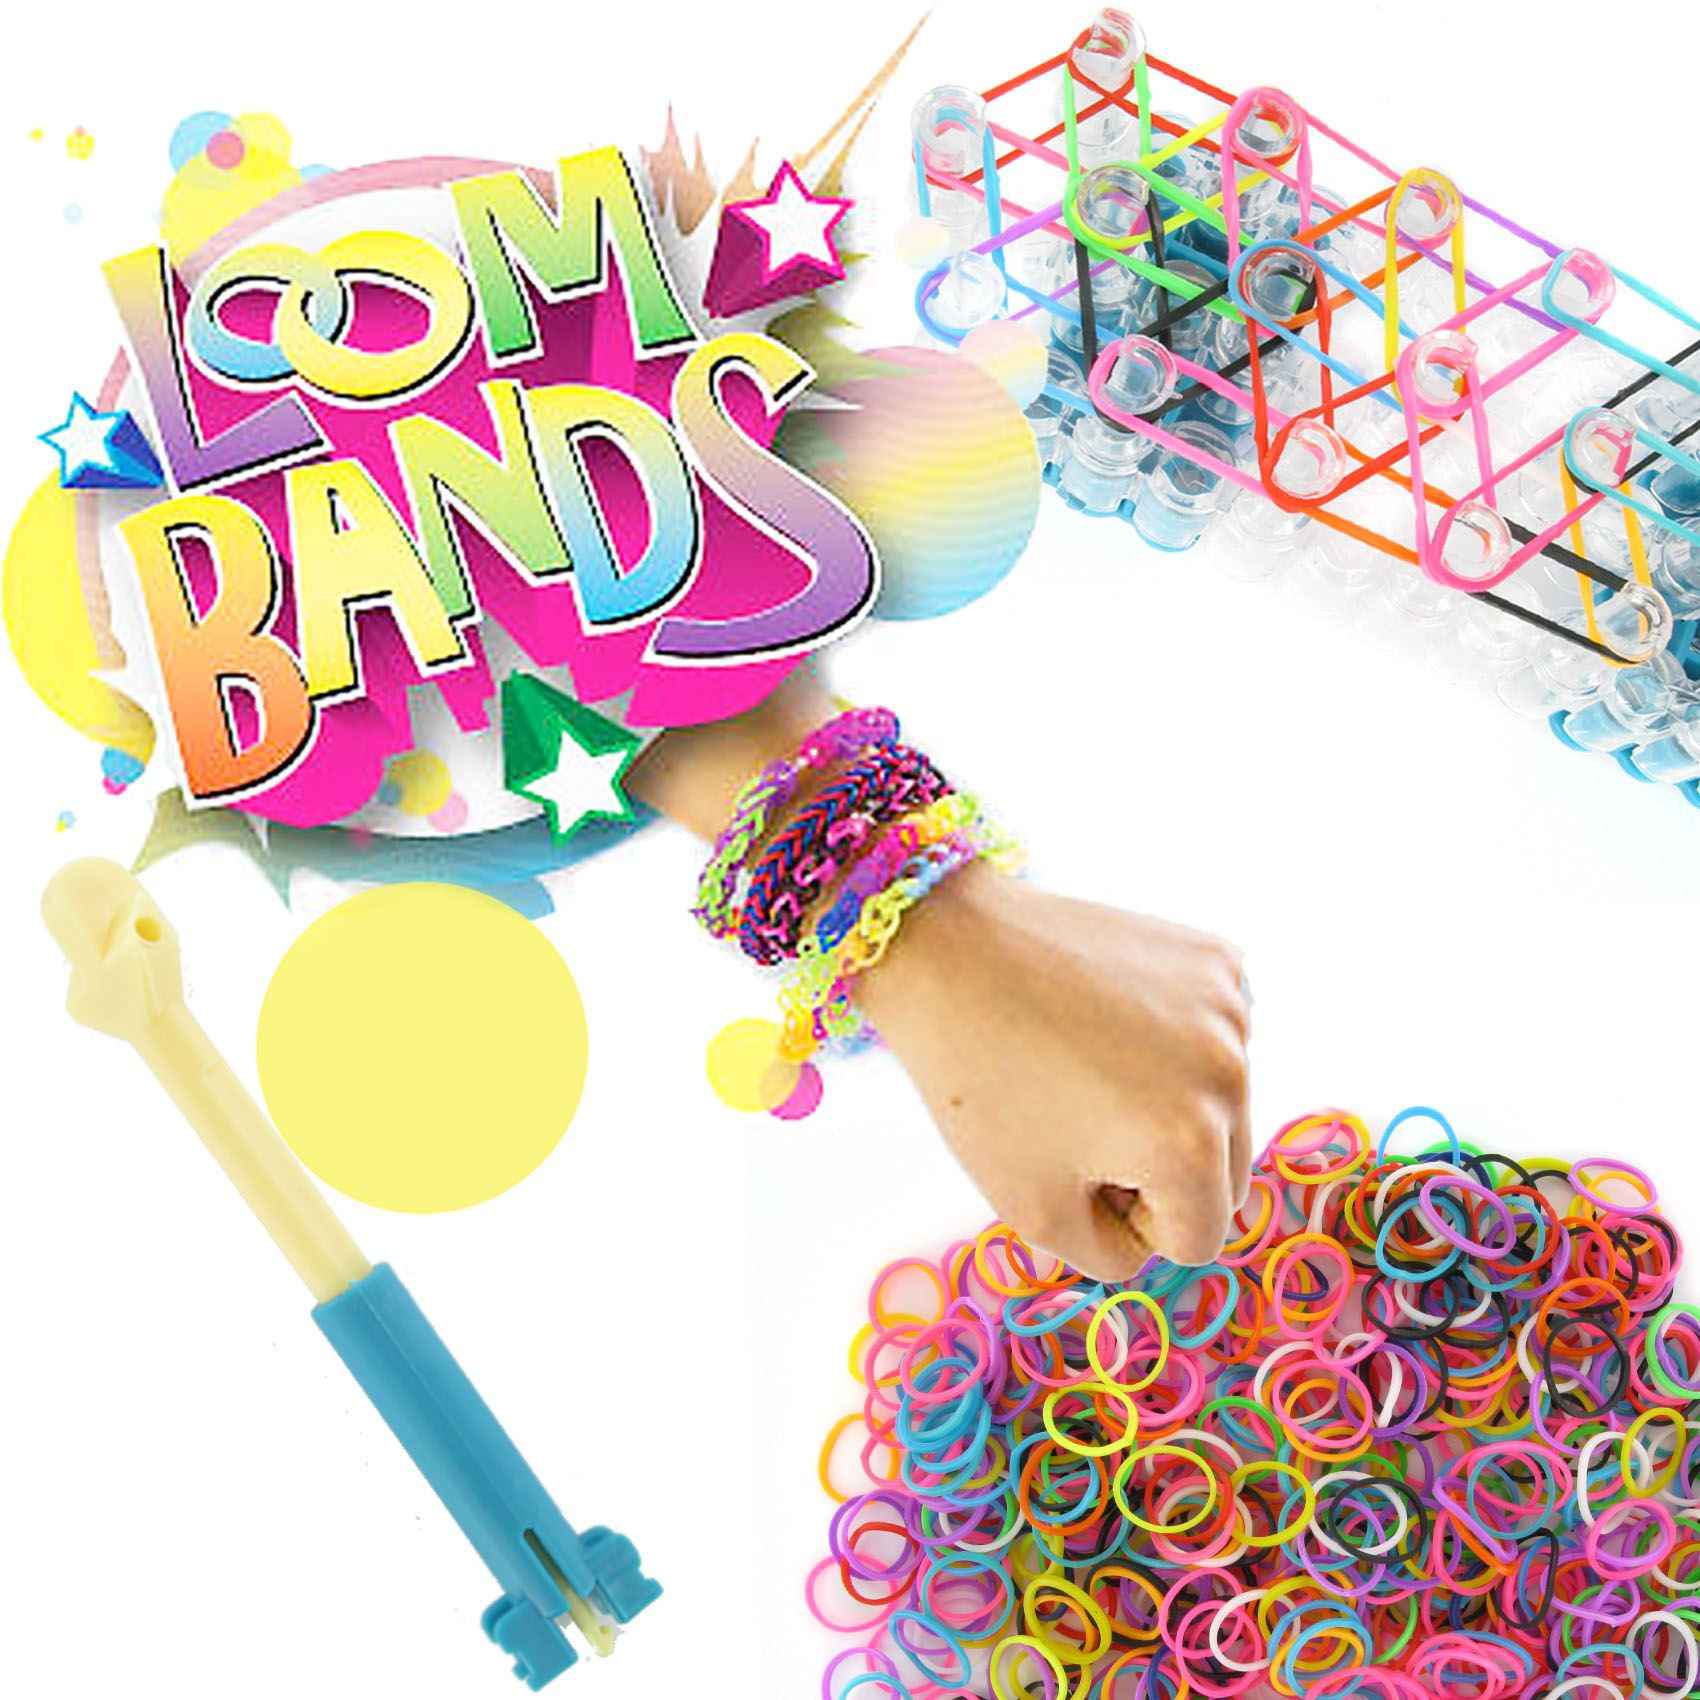 Colourful Rainbow Loom Rubber Bands Bracelet Making Kit